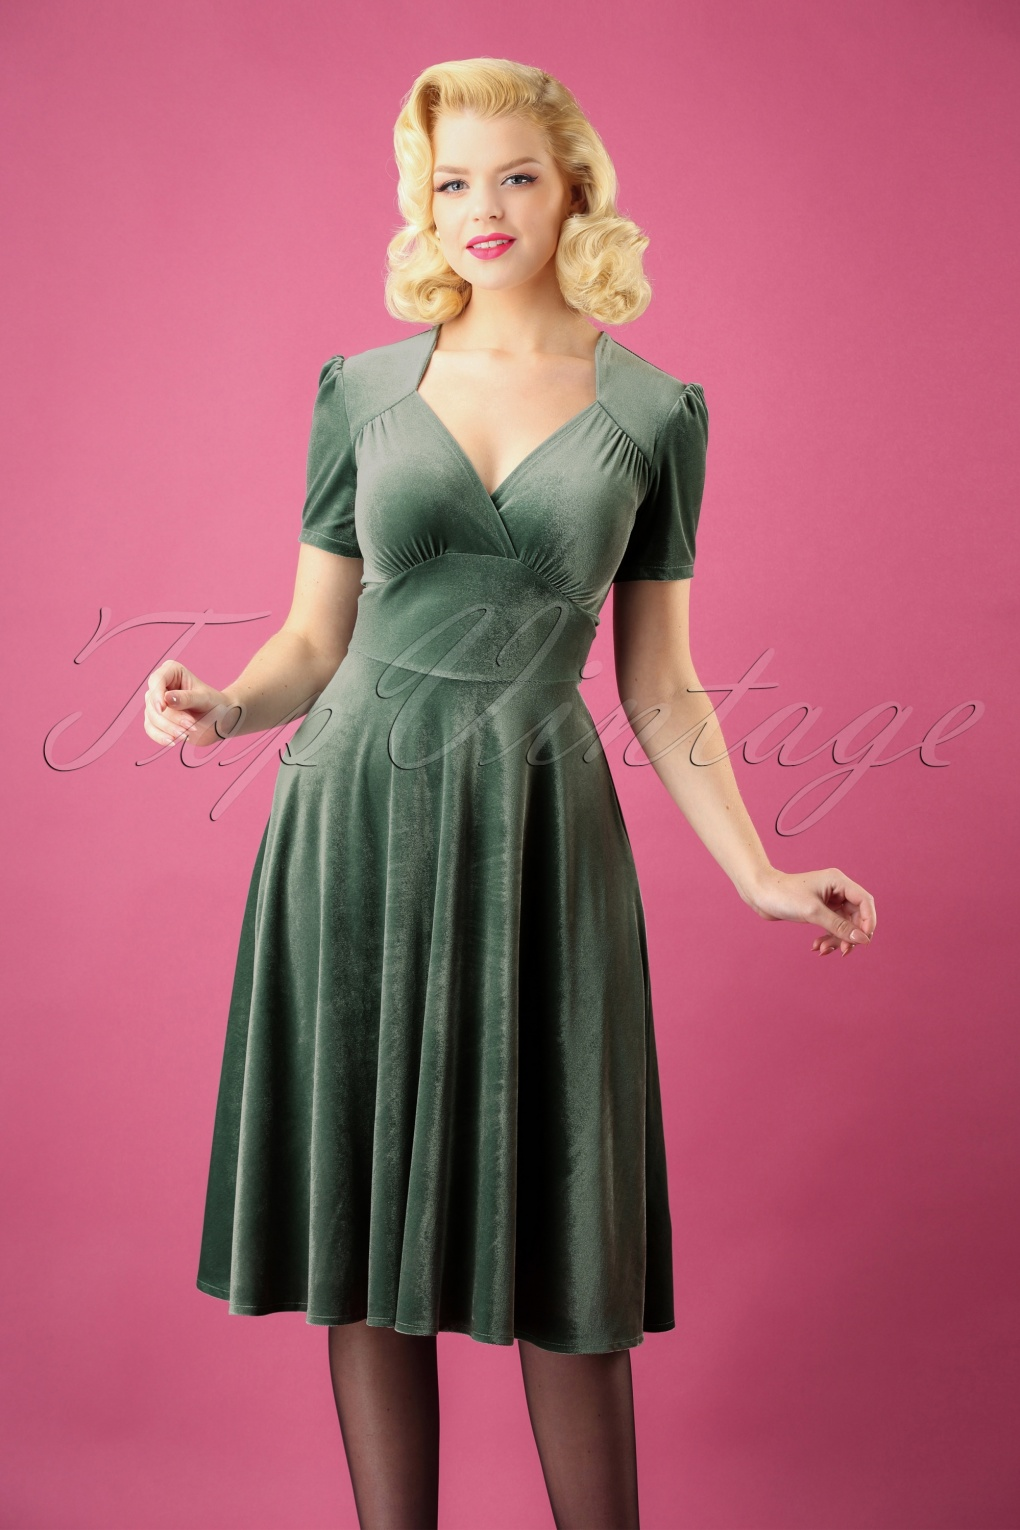 1950s Swing Dresses | 50s Swing Dress 50s Hollywood Circle Dress in Mint Velvet £111.53 AT vintagedancer.com